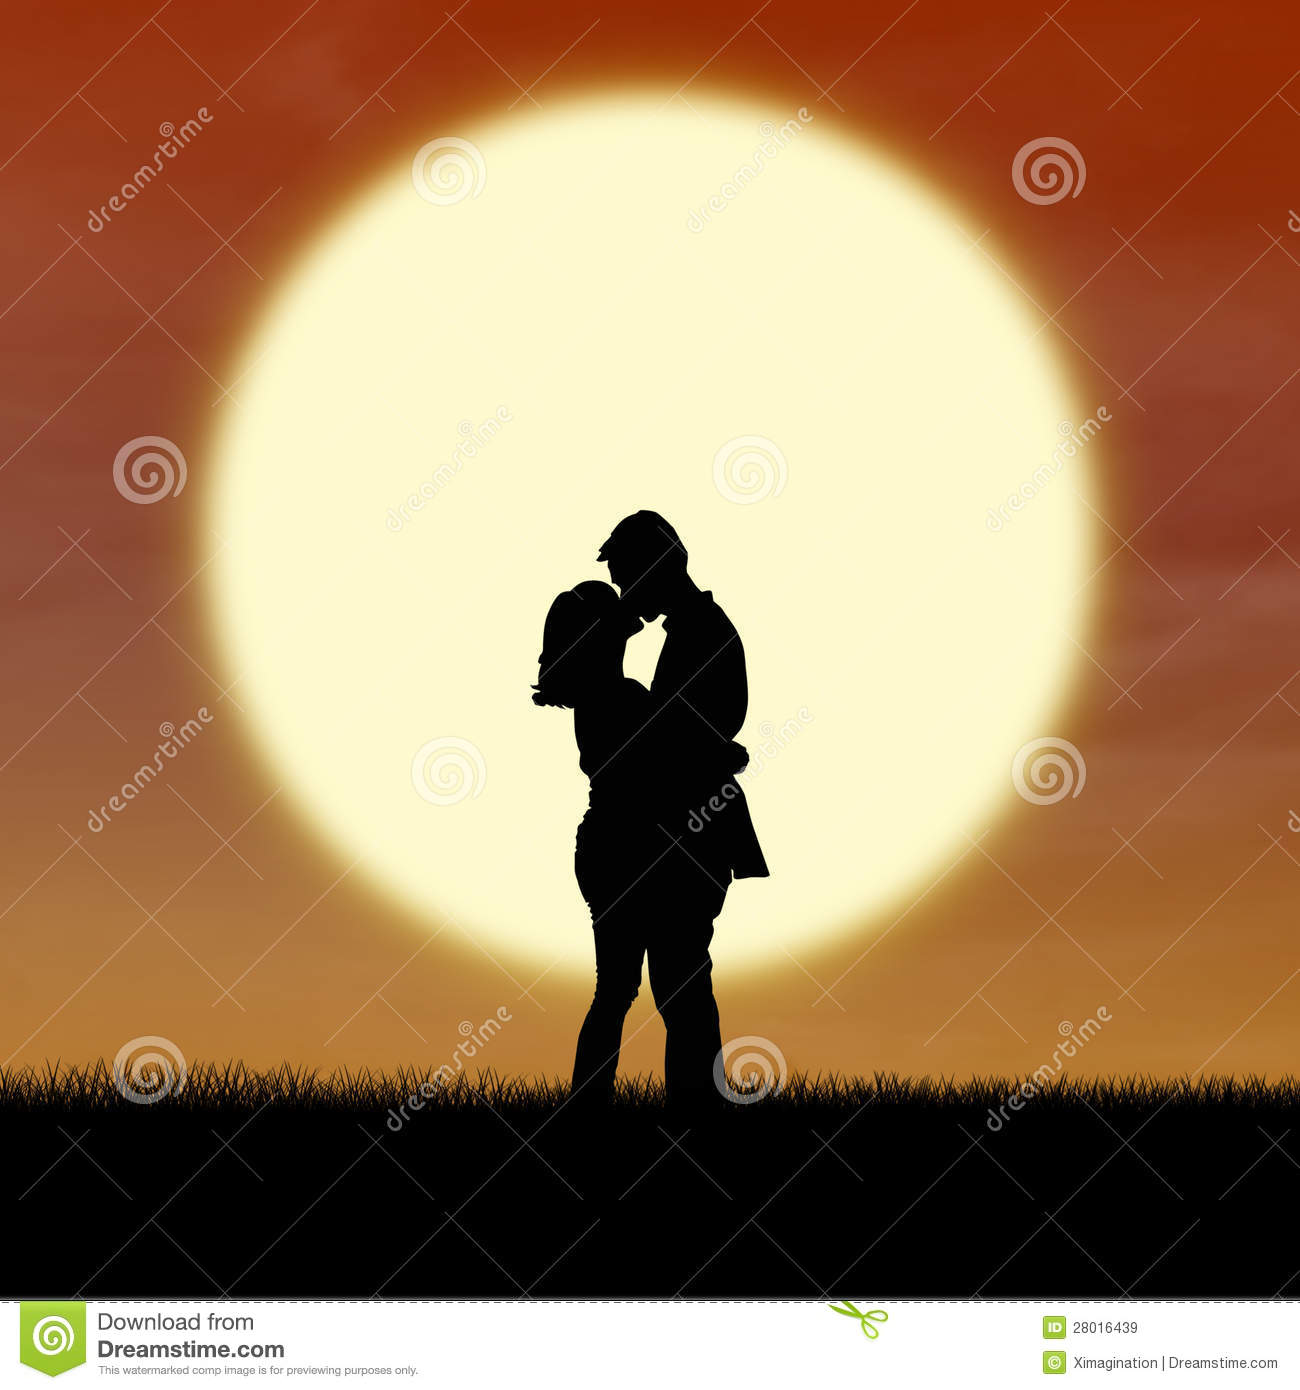 Boy Girl Kiss Love Wallpapers Romantic Couple Silhouette Kiss By Sunset Royalty Free